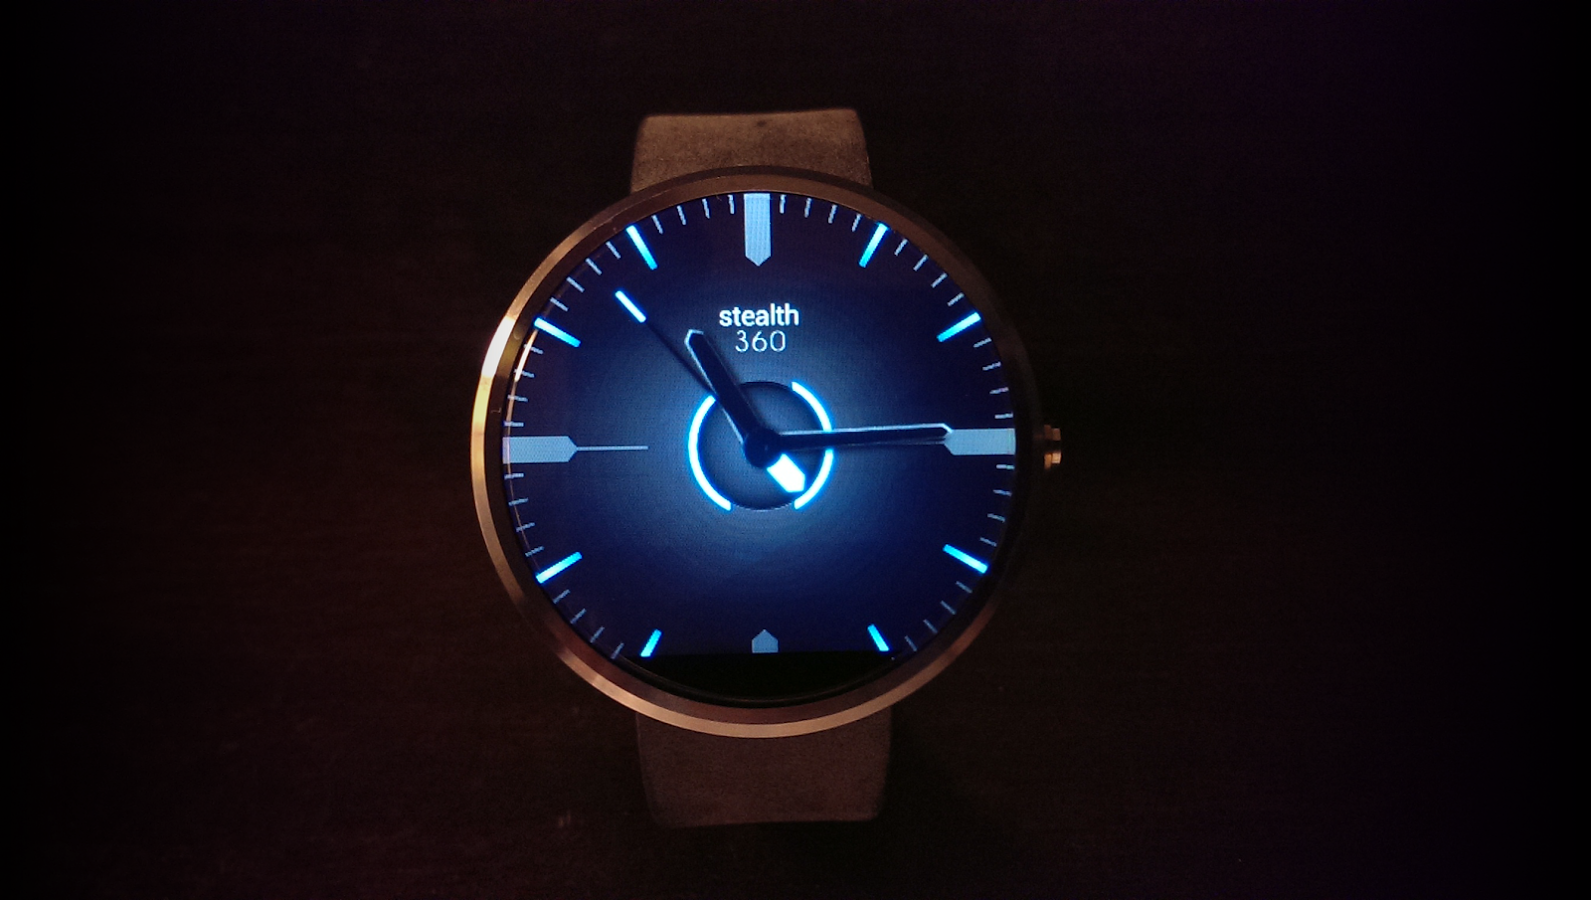 Facer android wear - Watch Face Stealth360 Classy Looking Watch Face For Android Wear